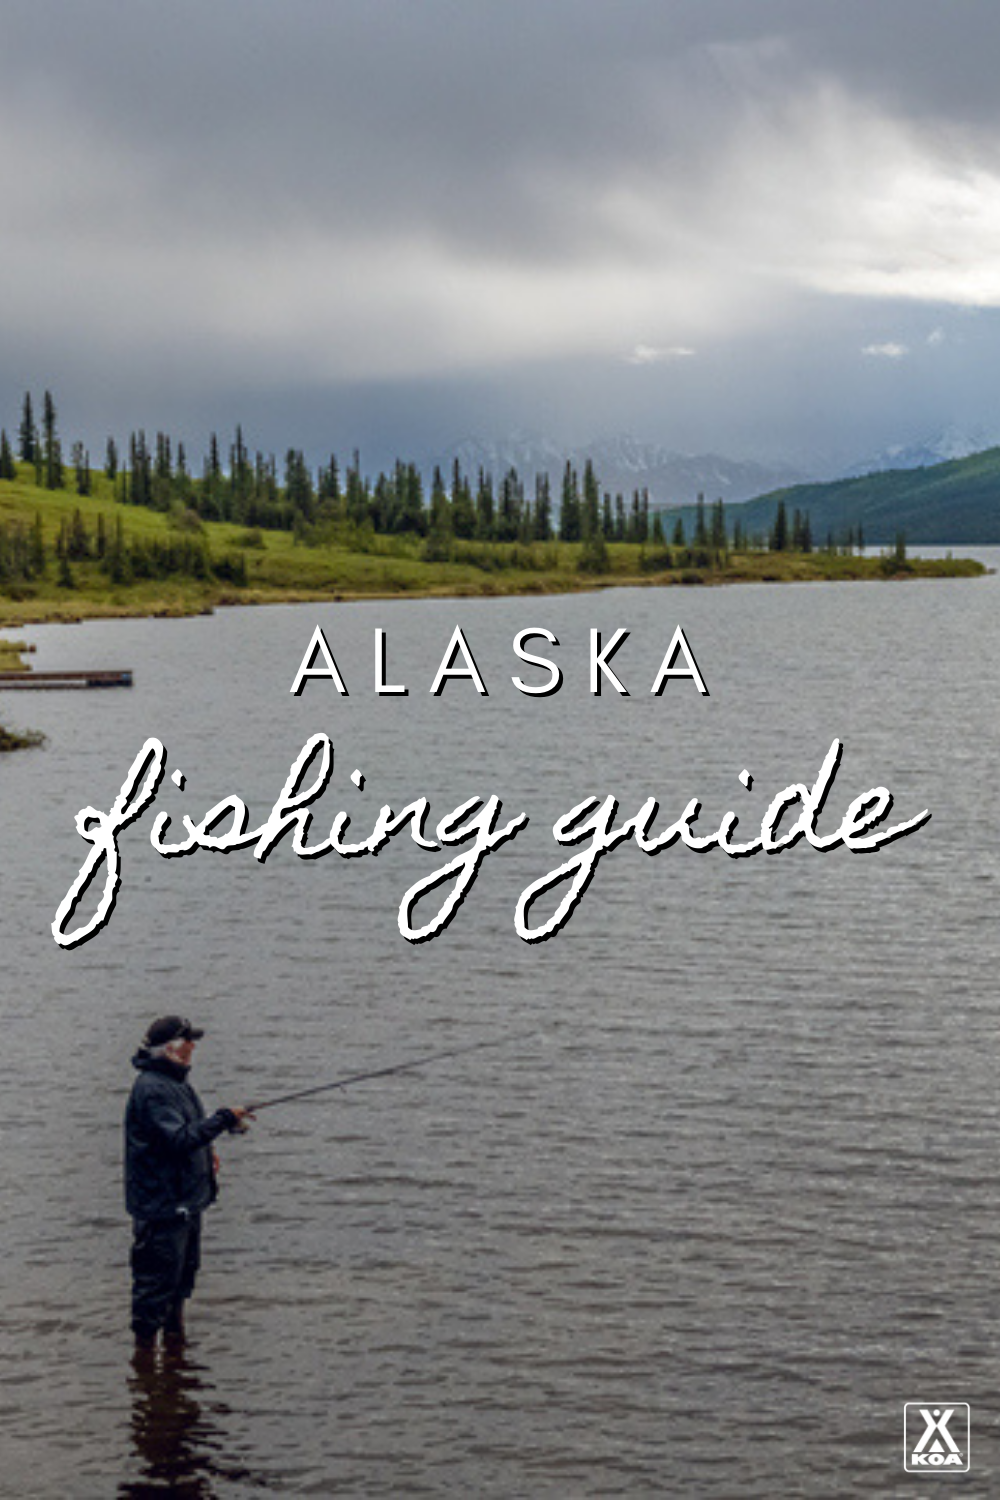 Alaska offers some of the best fishing in the world. From Pacific salmon to halibot to rockfish. Learn more about planning a fishing trip to Alaska here!